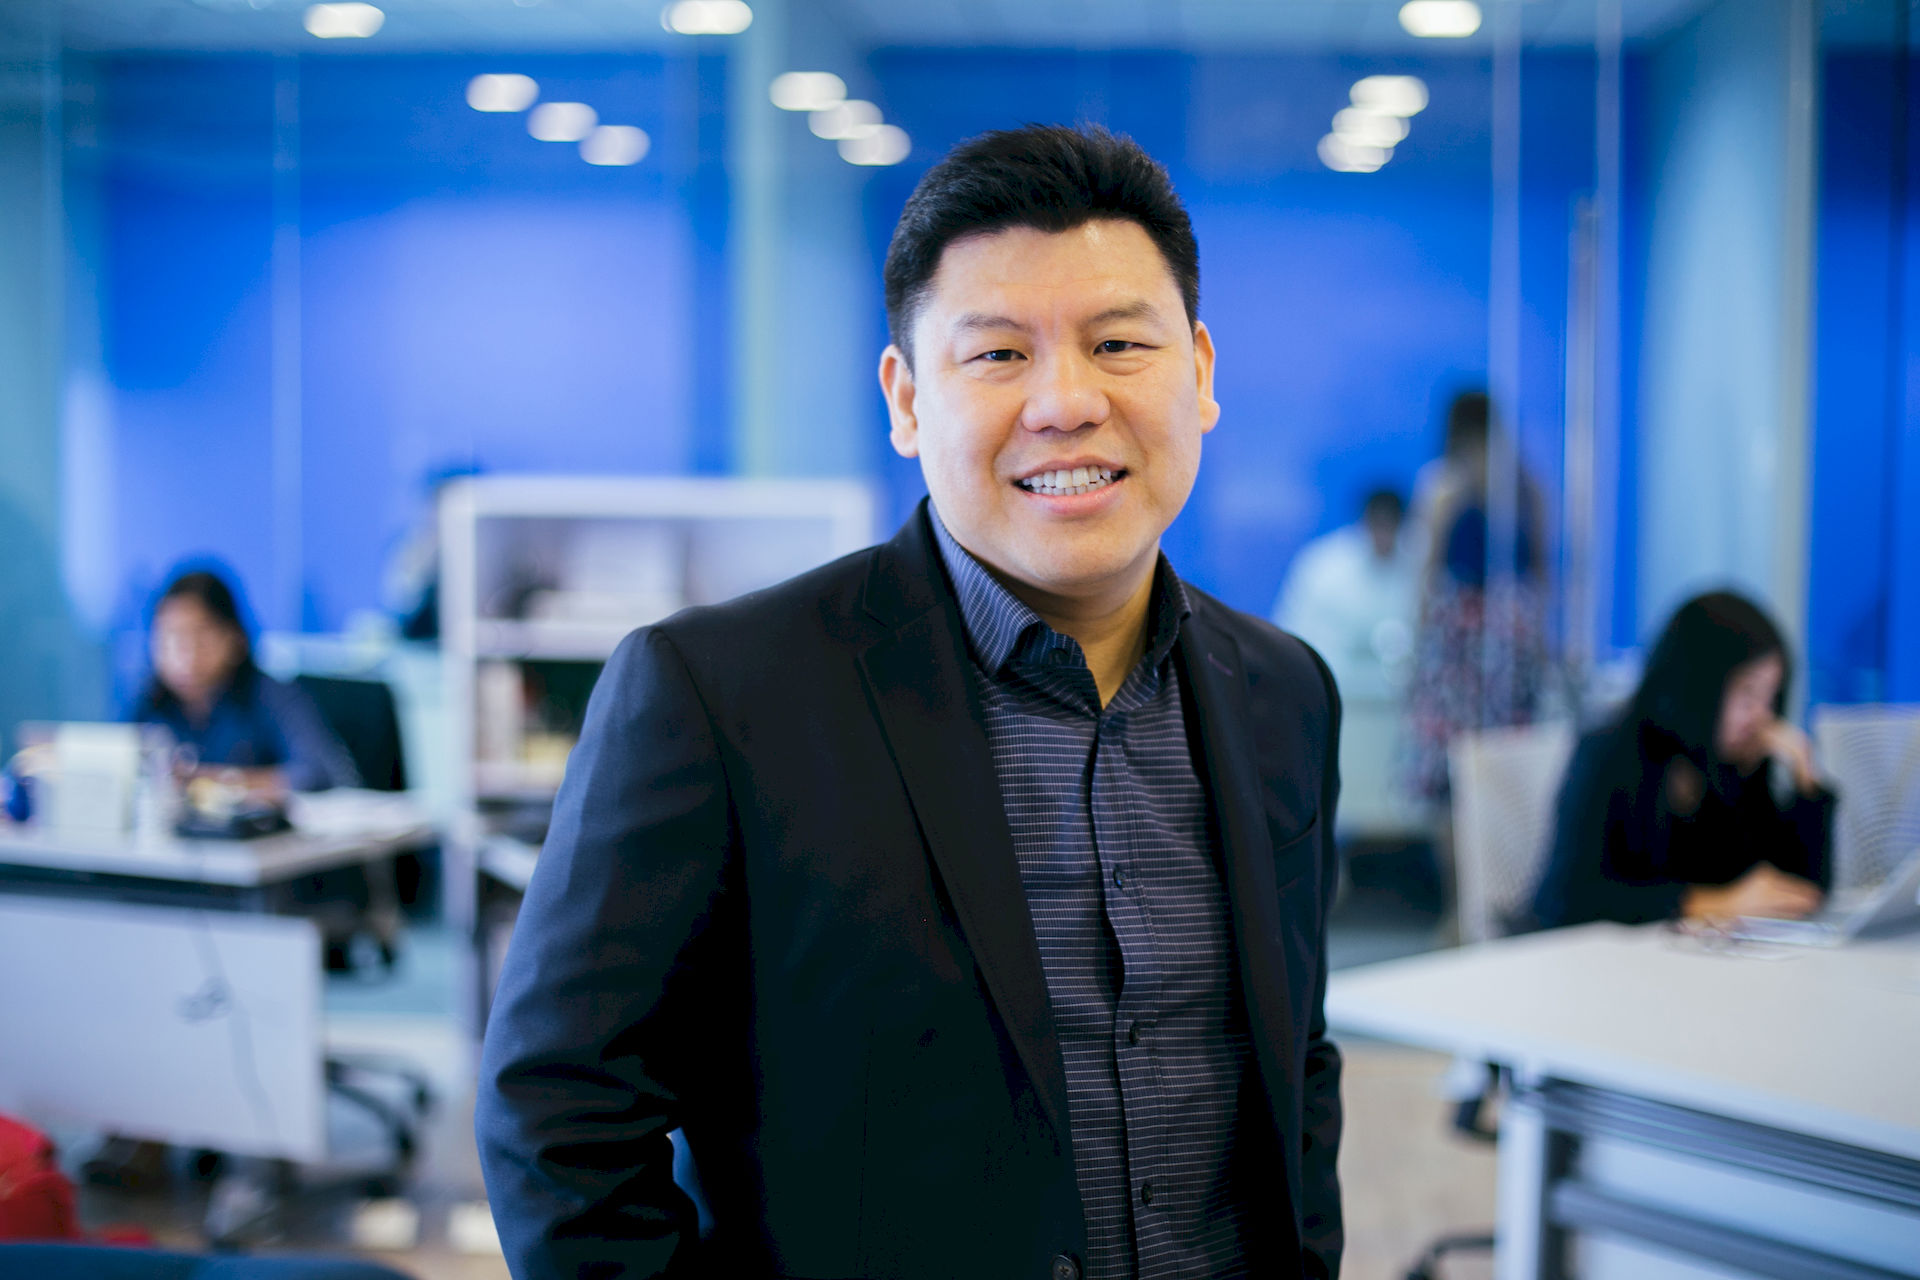 Photo of Winston Damarillo: CEO/Founder of Morphlabs and Filipino entrepreneur